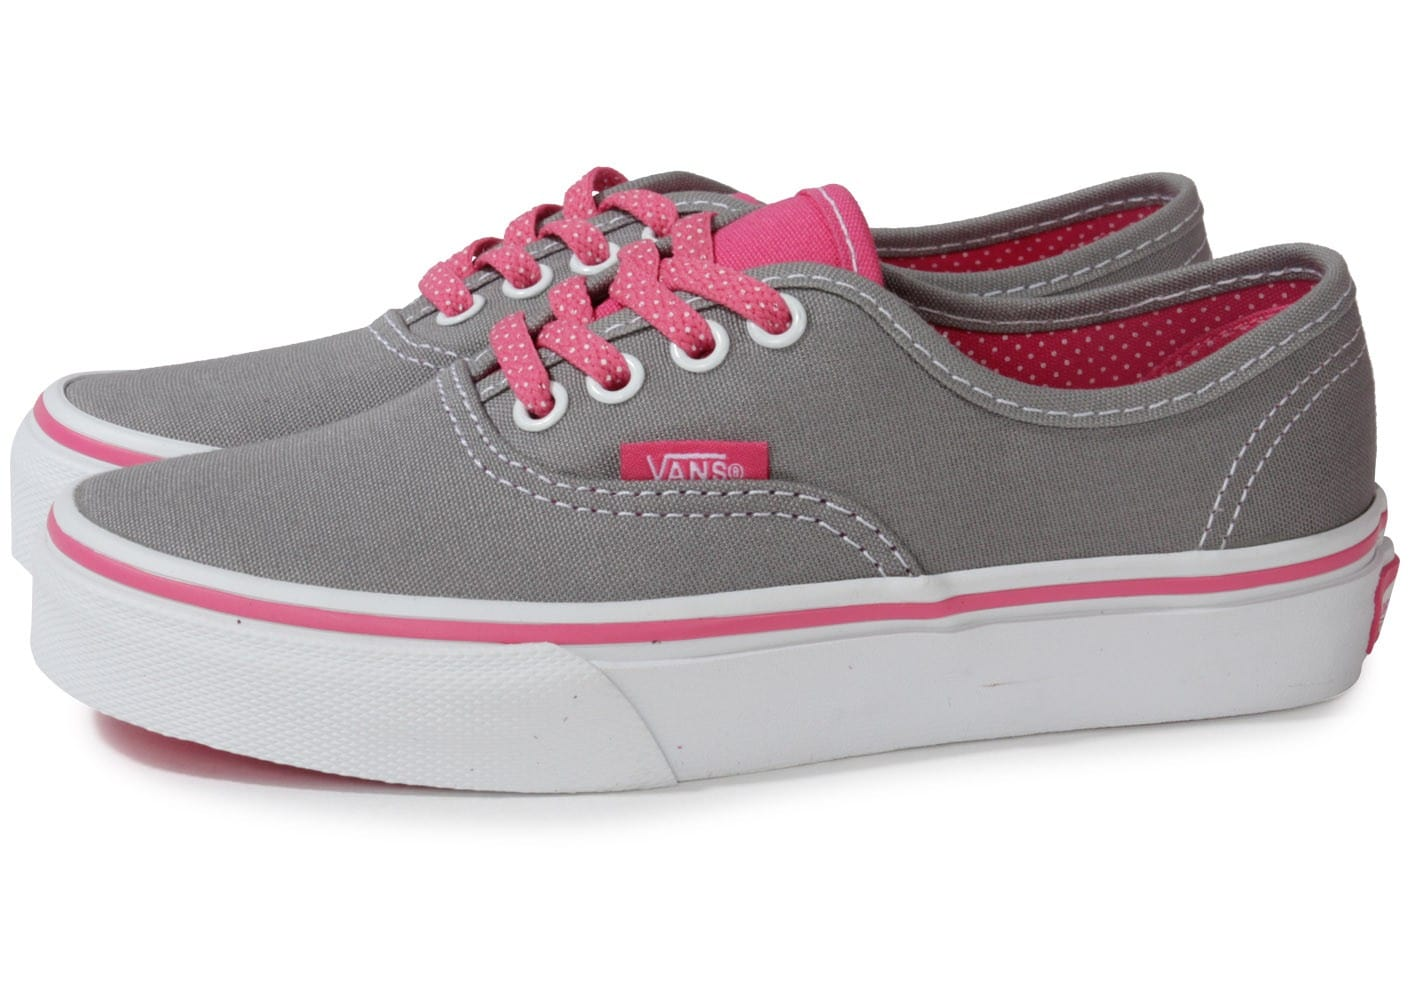 vans authentic grise rose enfant chaussures chaussures chausport. Black Bedroom Furniture Sets. Home Design Ideas